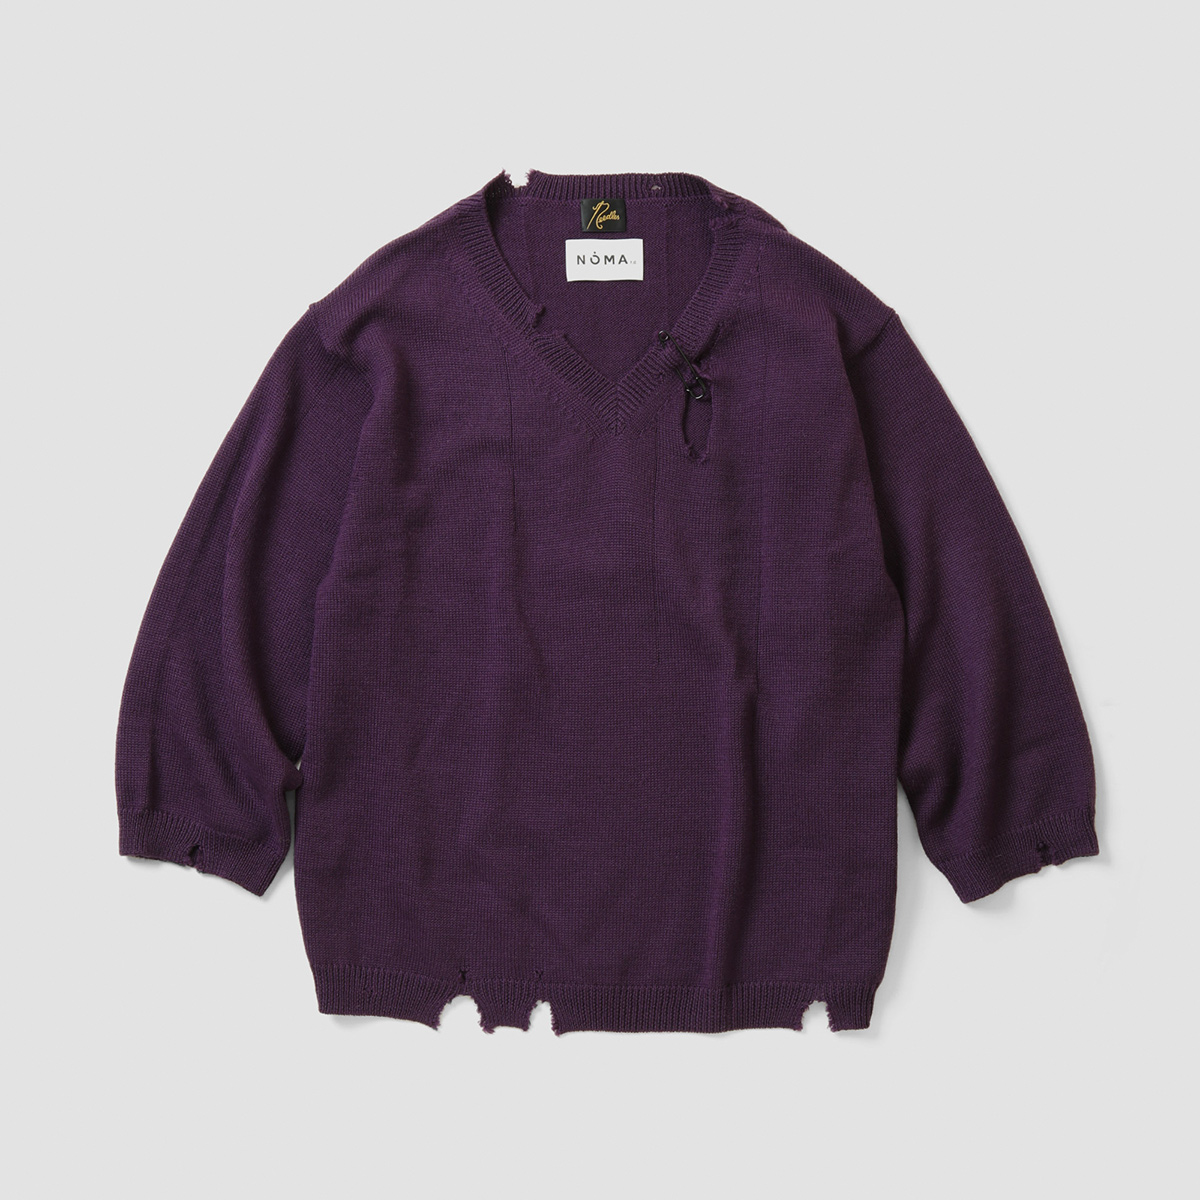 〈NEEDLES〉 x 〈NOMA t.d.〉2021 FALL WINTER COLLECTION